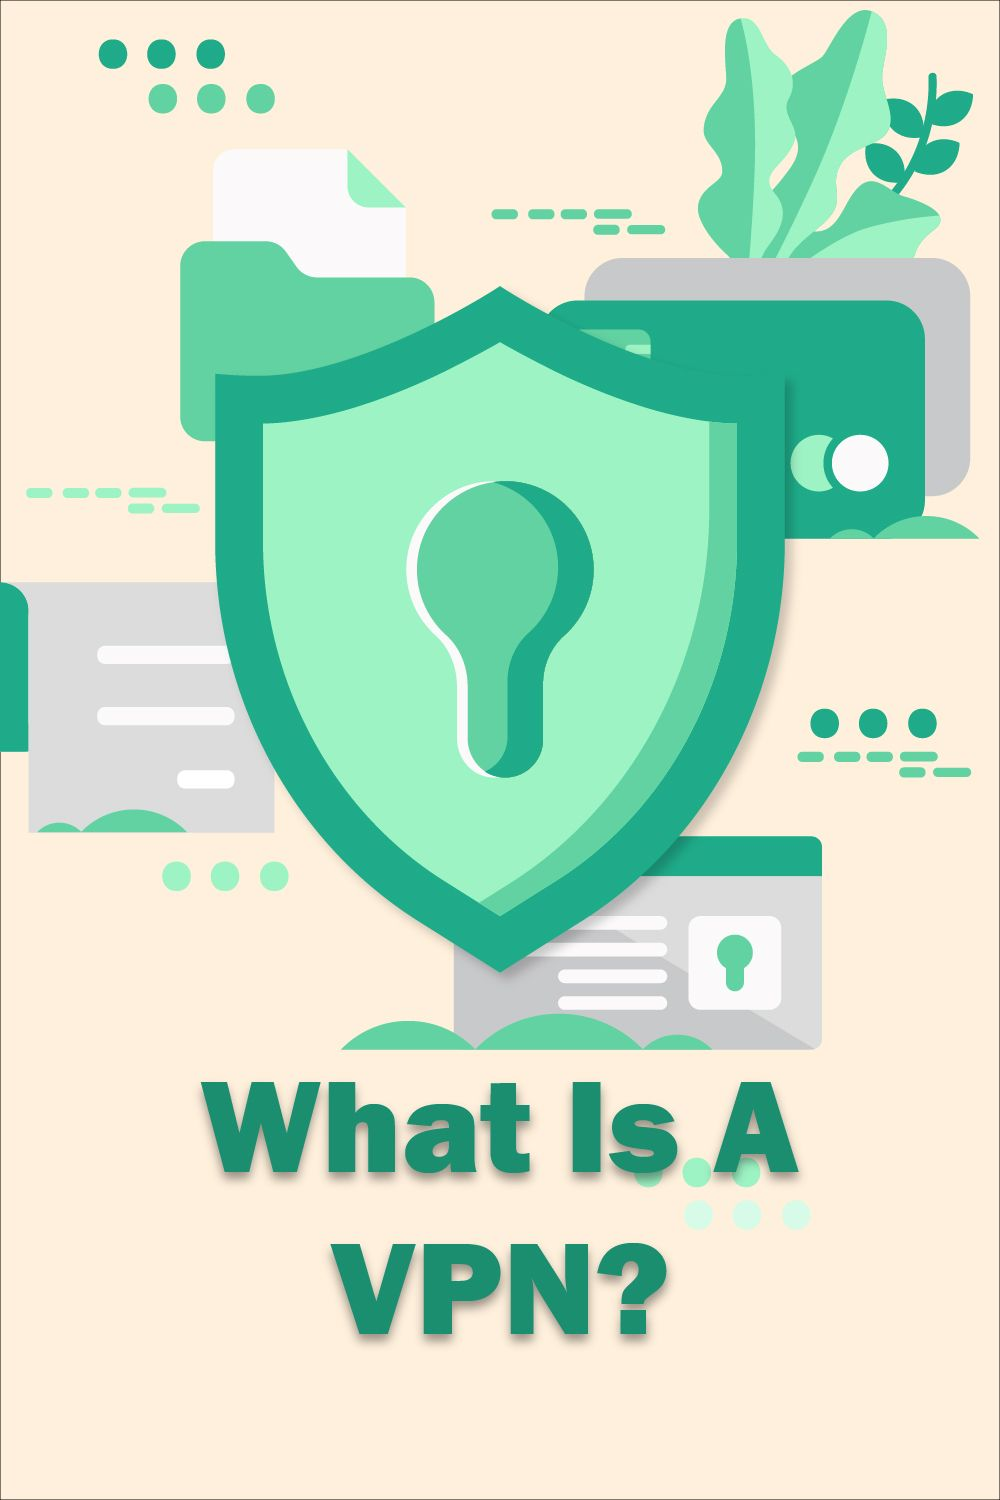 9ea621c6fb949238f704125d4efe46c2 - What Is A Vpn And What Is It Used For